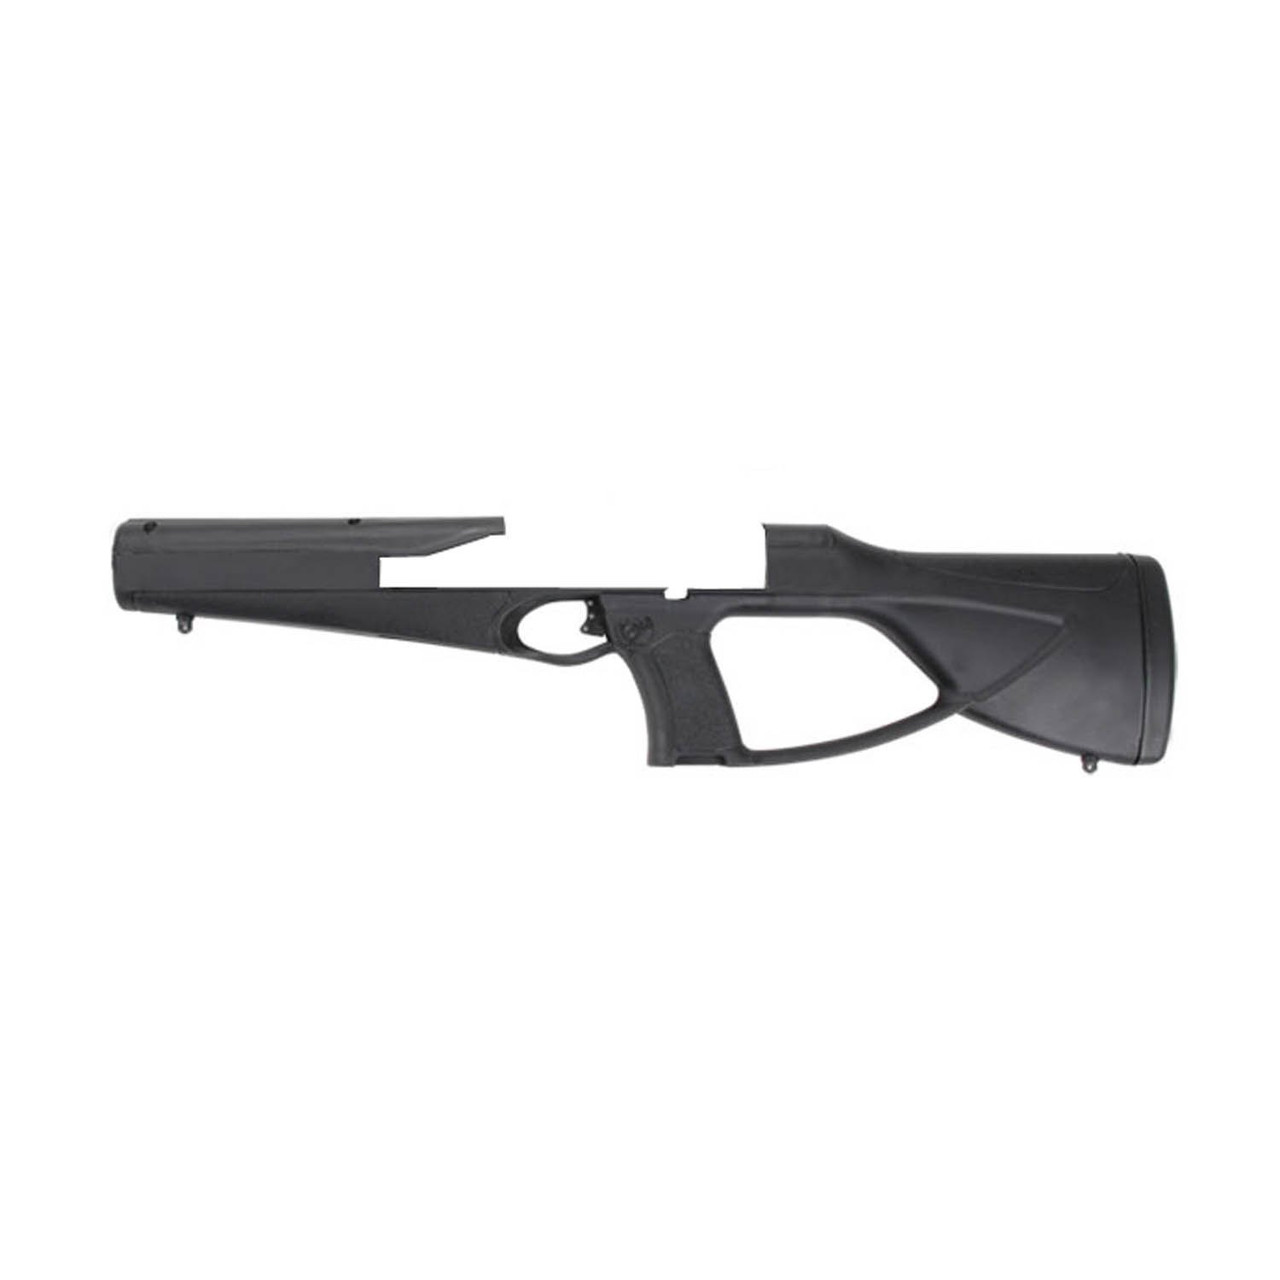 ATI Hi-Point 9mm Carbine Stock With Recoil Pad, Black - HIP9000